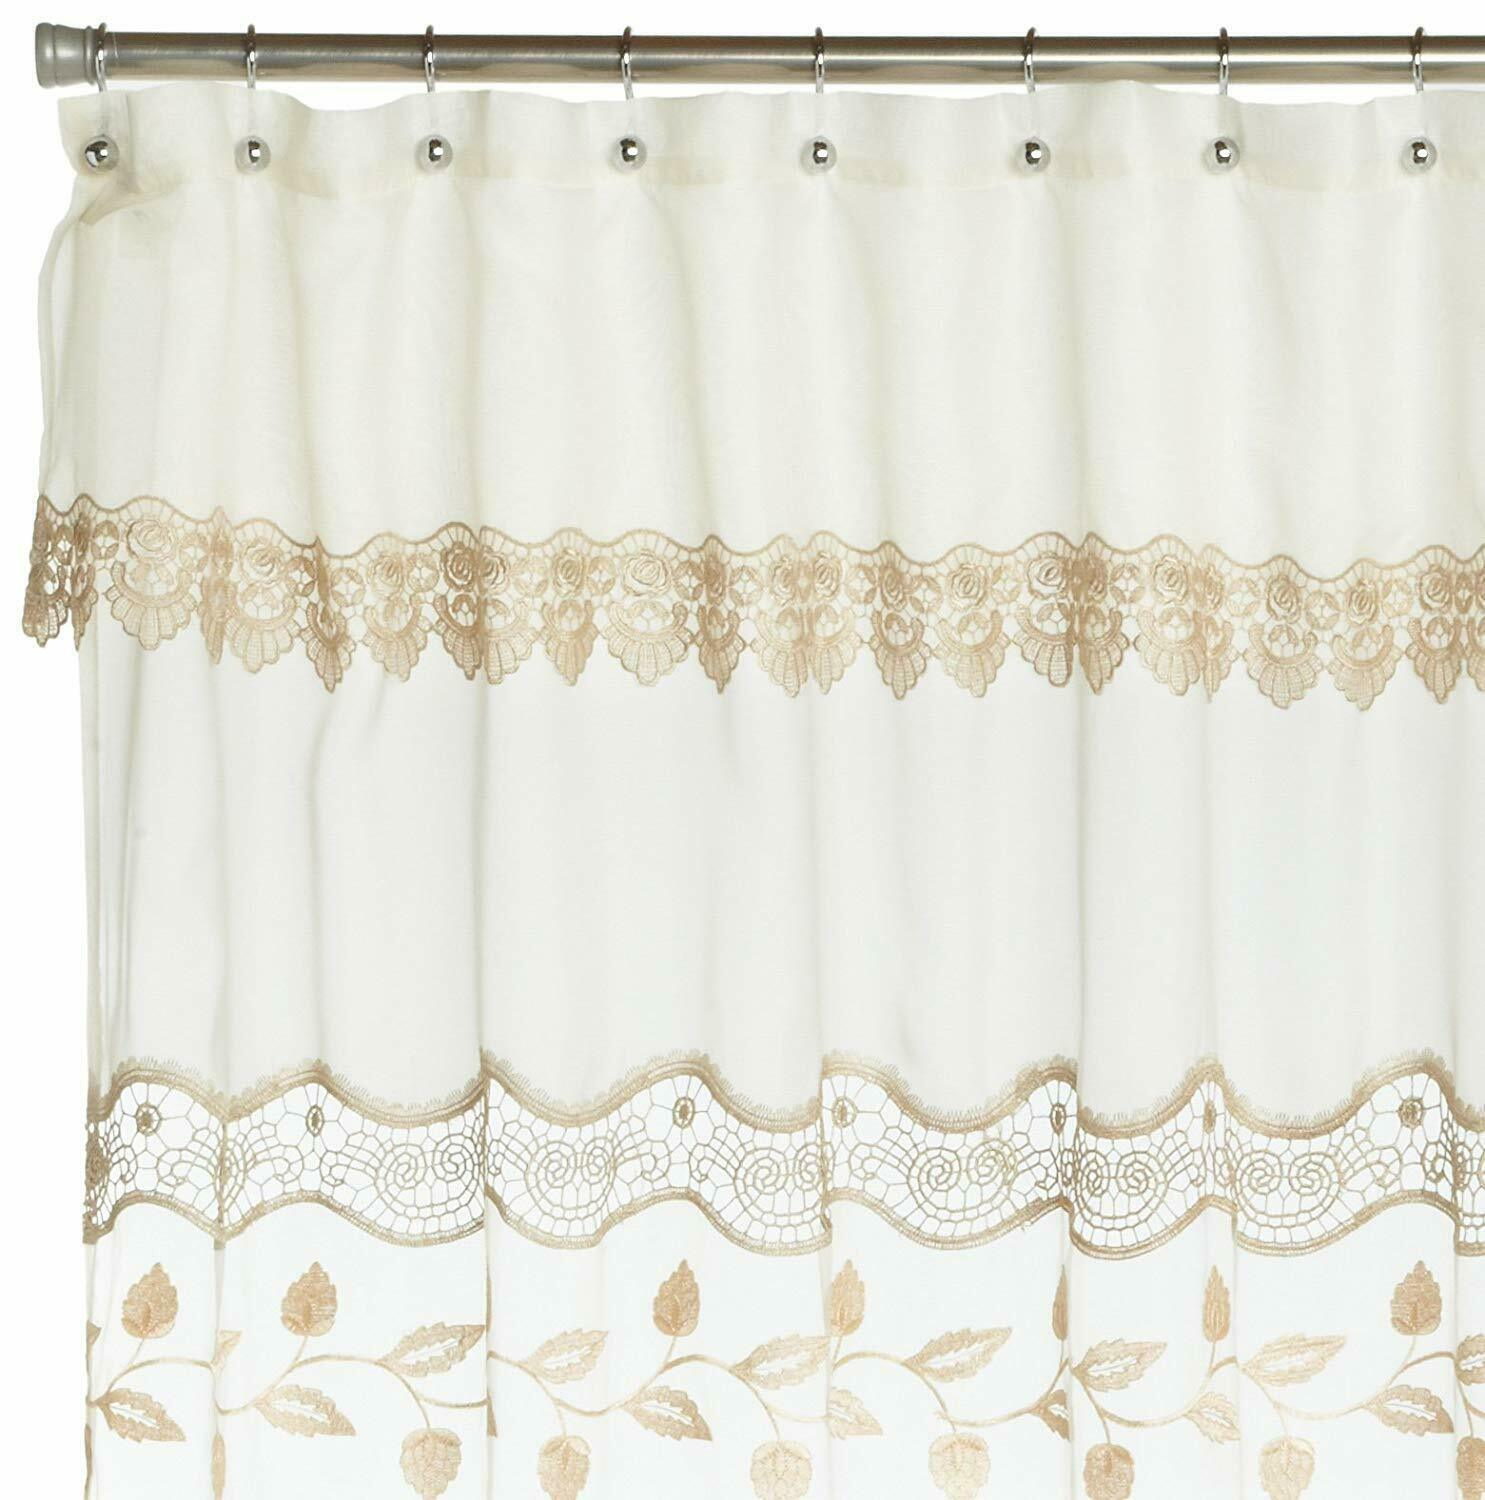 Seville Embroidered Shower Curtain, Ecru, by Lorraine Home Fashions